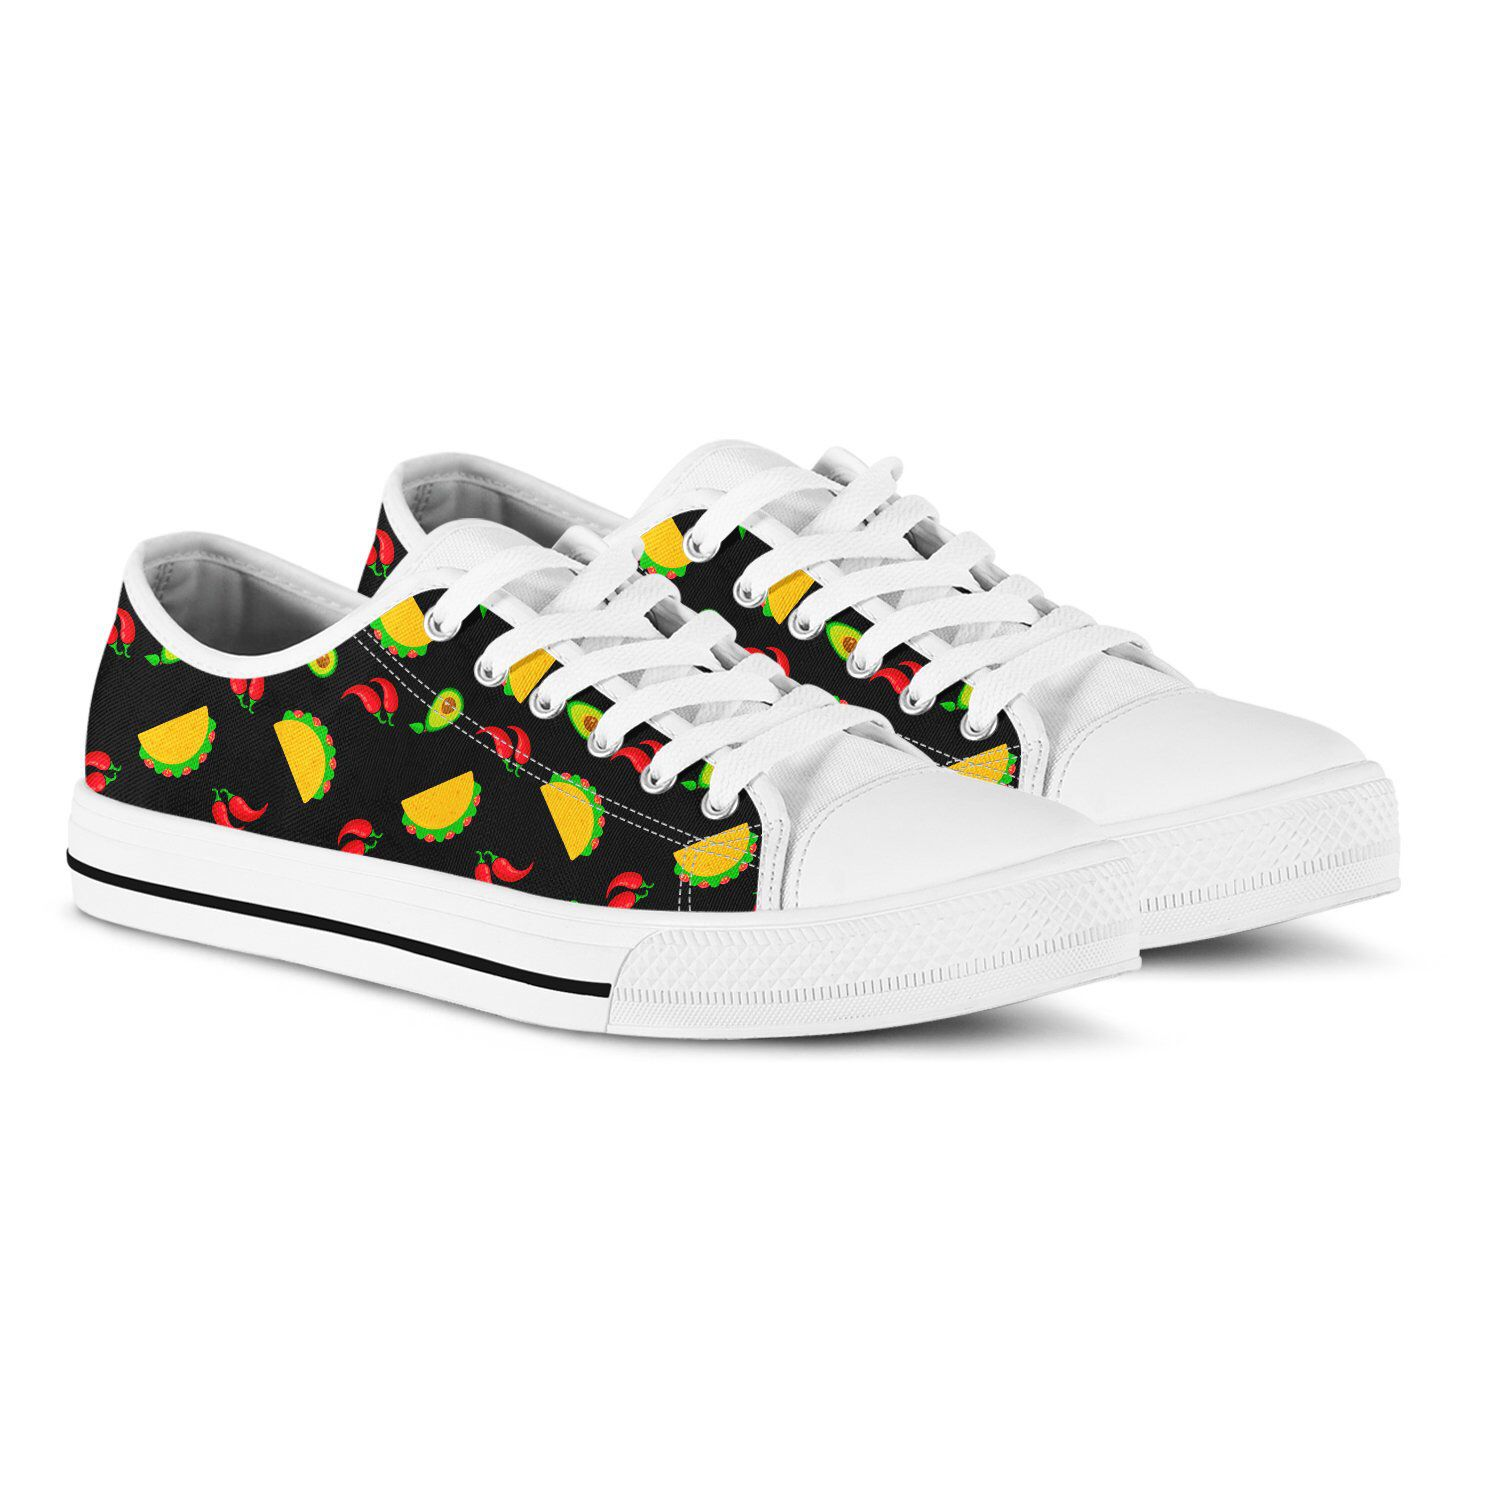 e98d206720d07 Taco print sneakers | Sneakers I Want To Own | Sneakers, Black ...